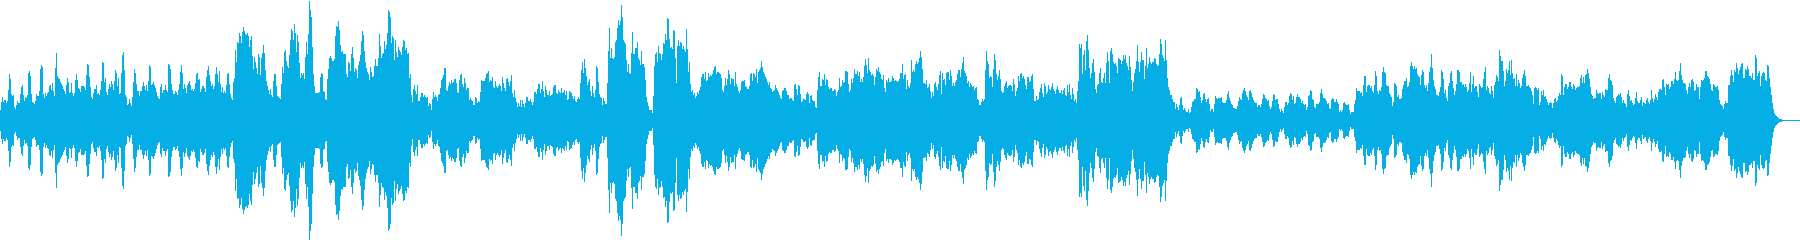 A sad and beautiful orchestra's reproduced waveform